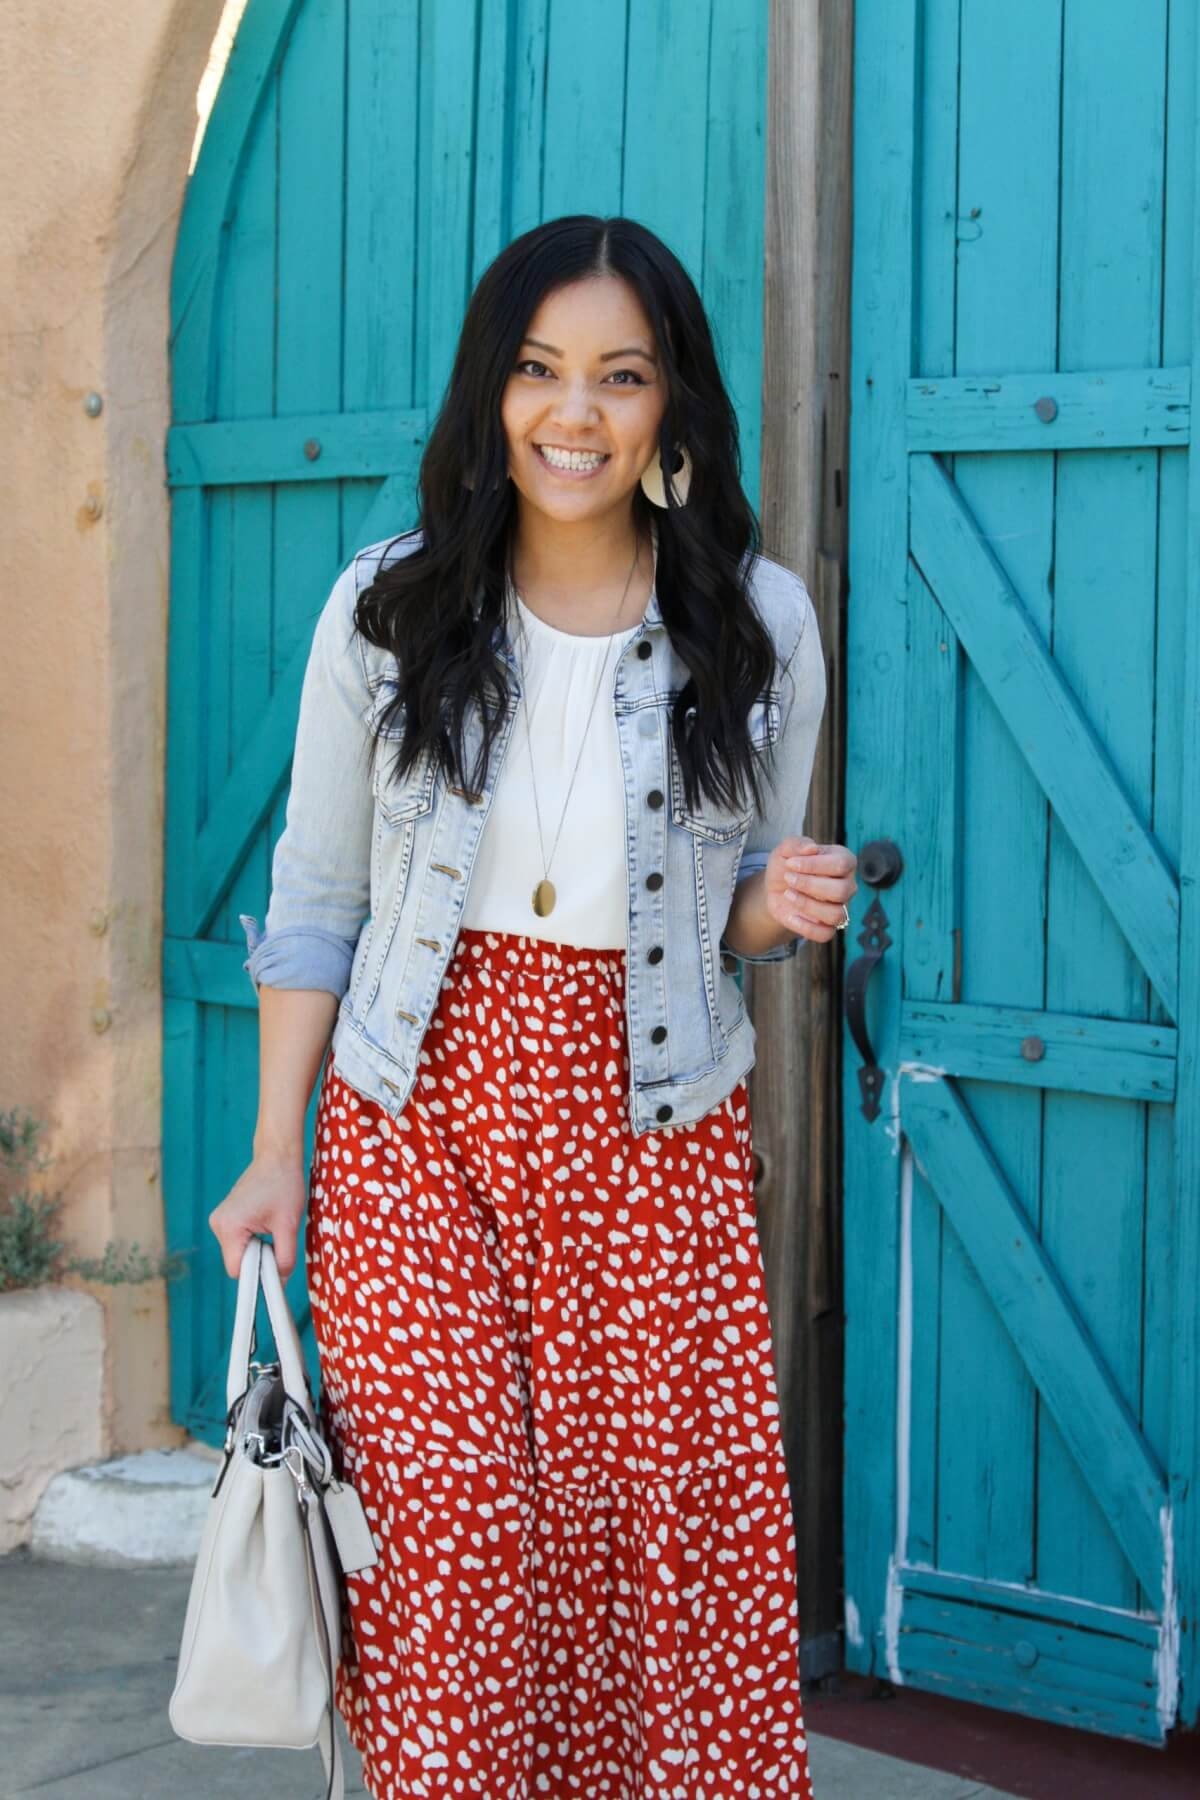 white top for spring: white top, printed skirt, pendant necklace, white earrings, white bag, denim jacket